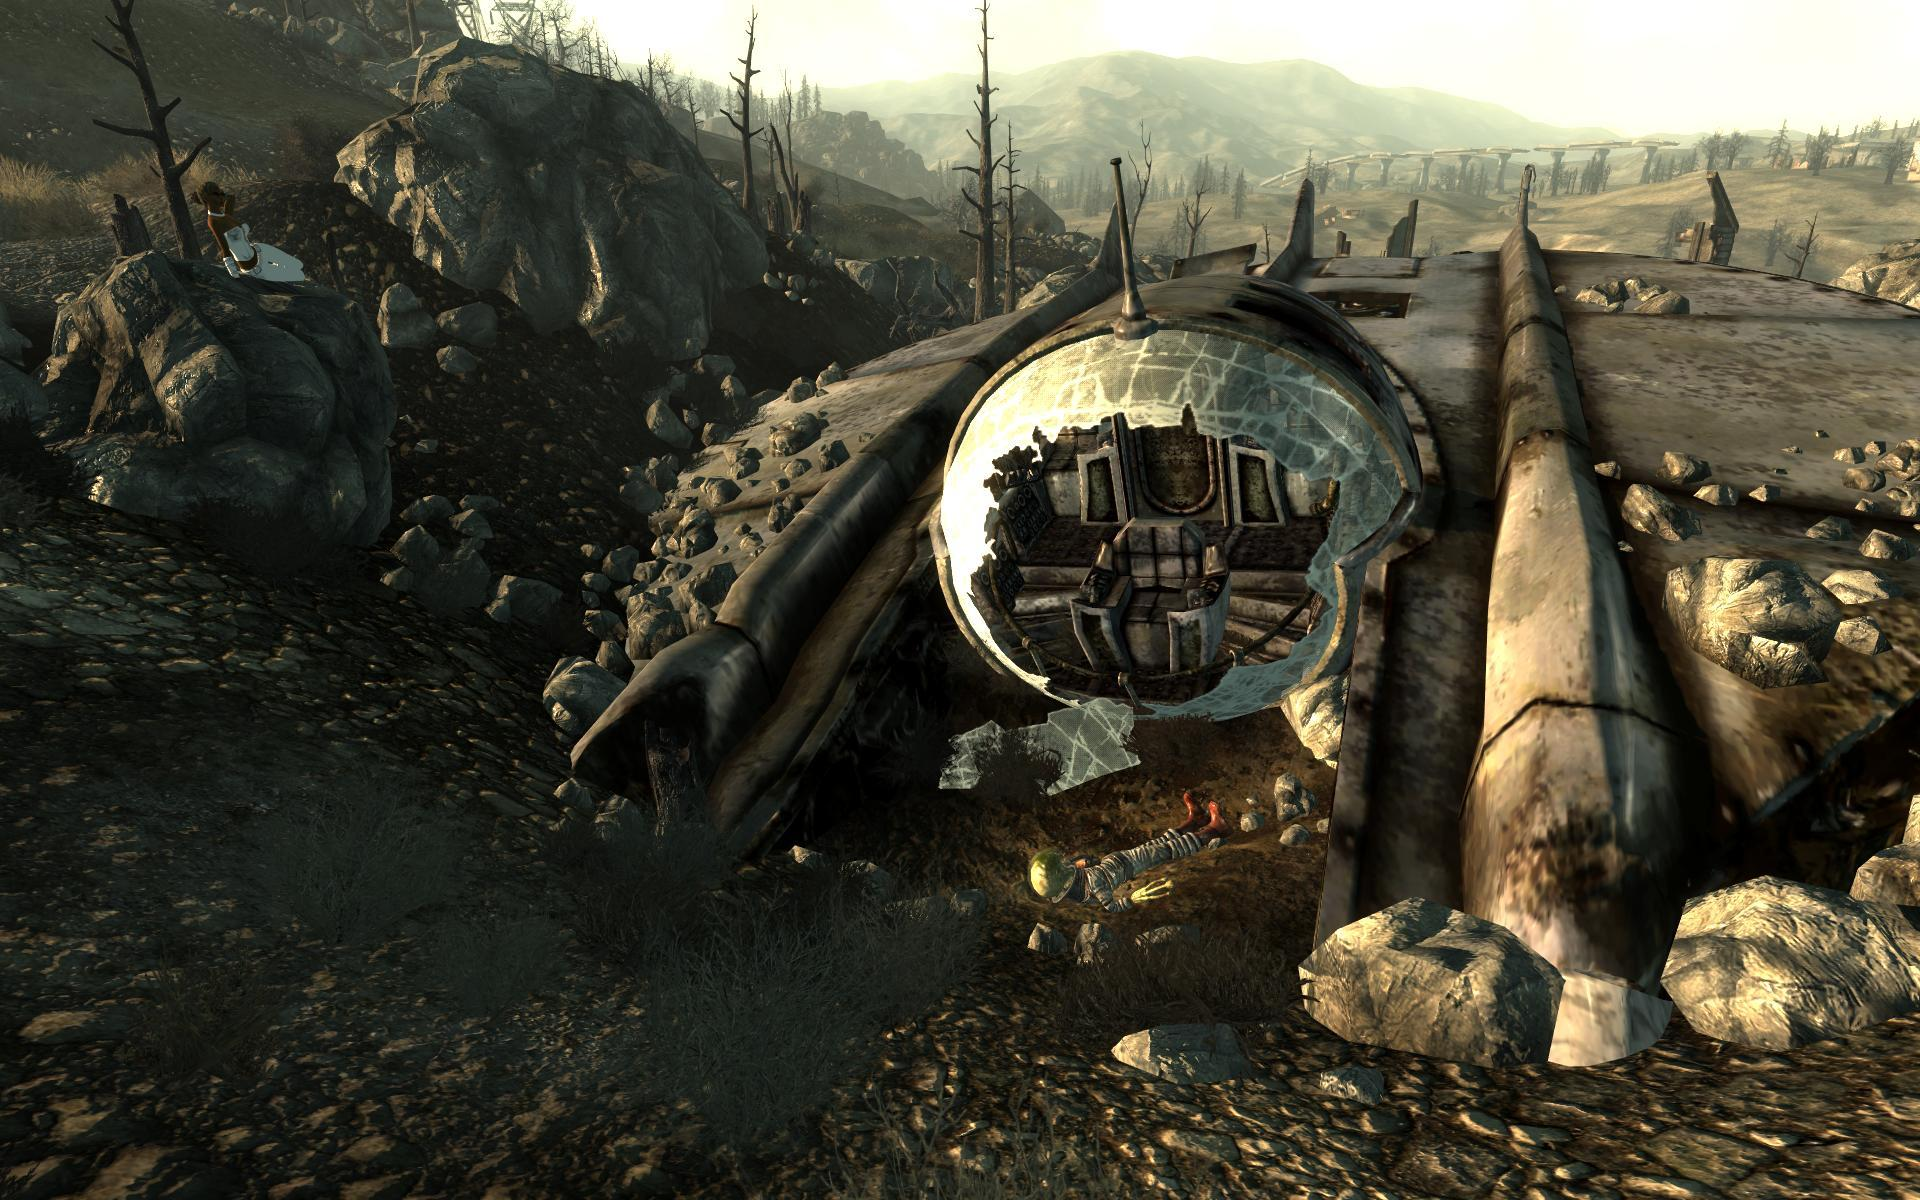 Fallout Wallpapers - Full HD wallpaper search - page 4